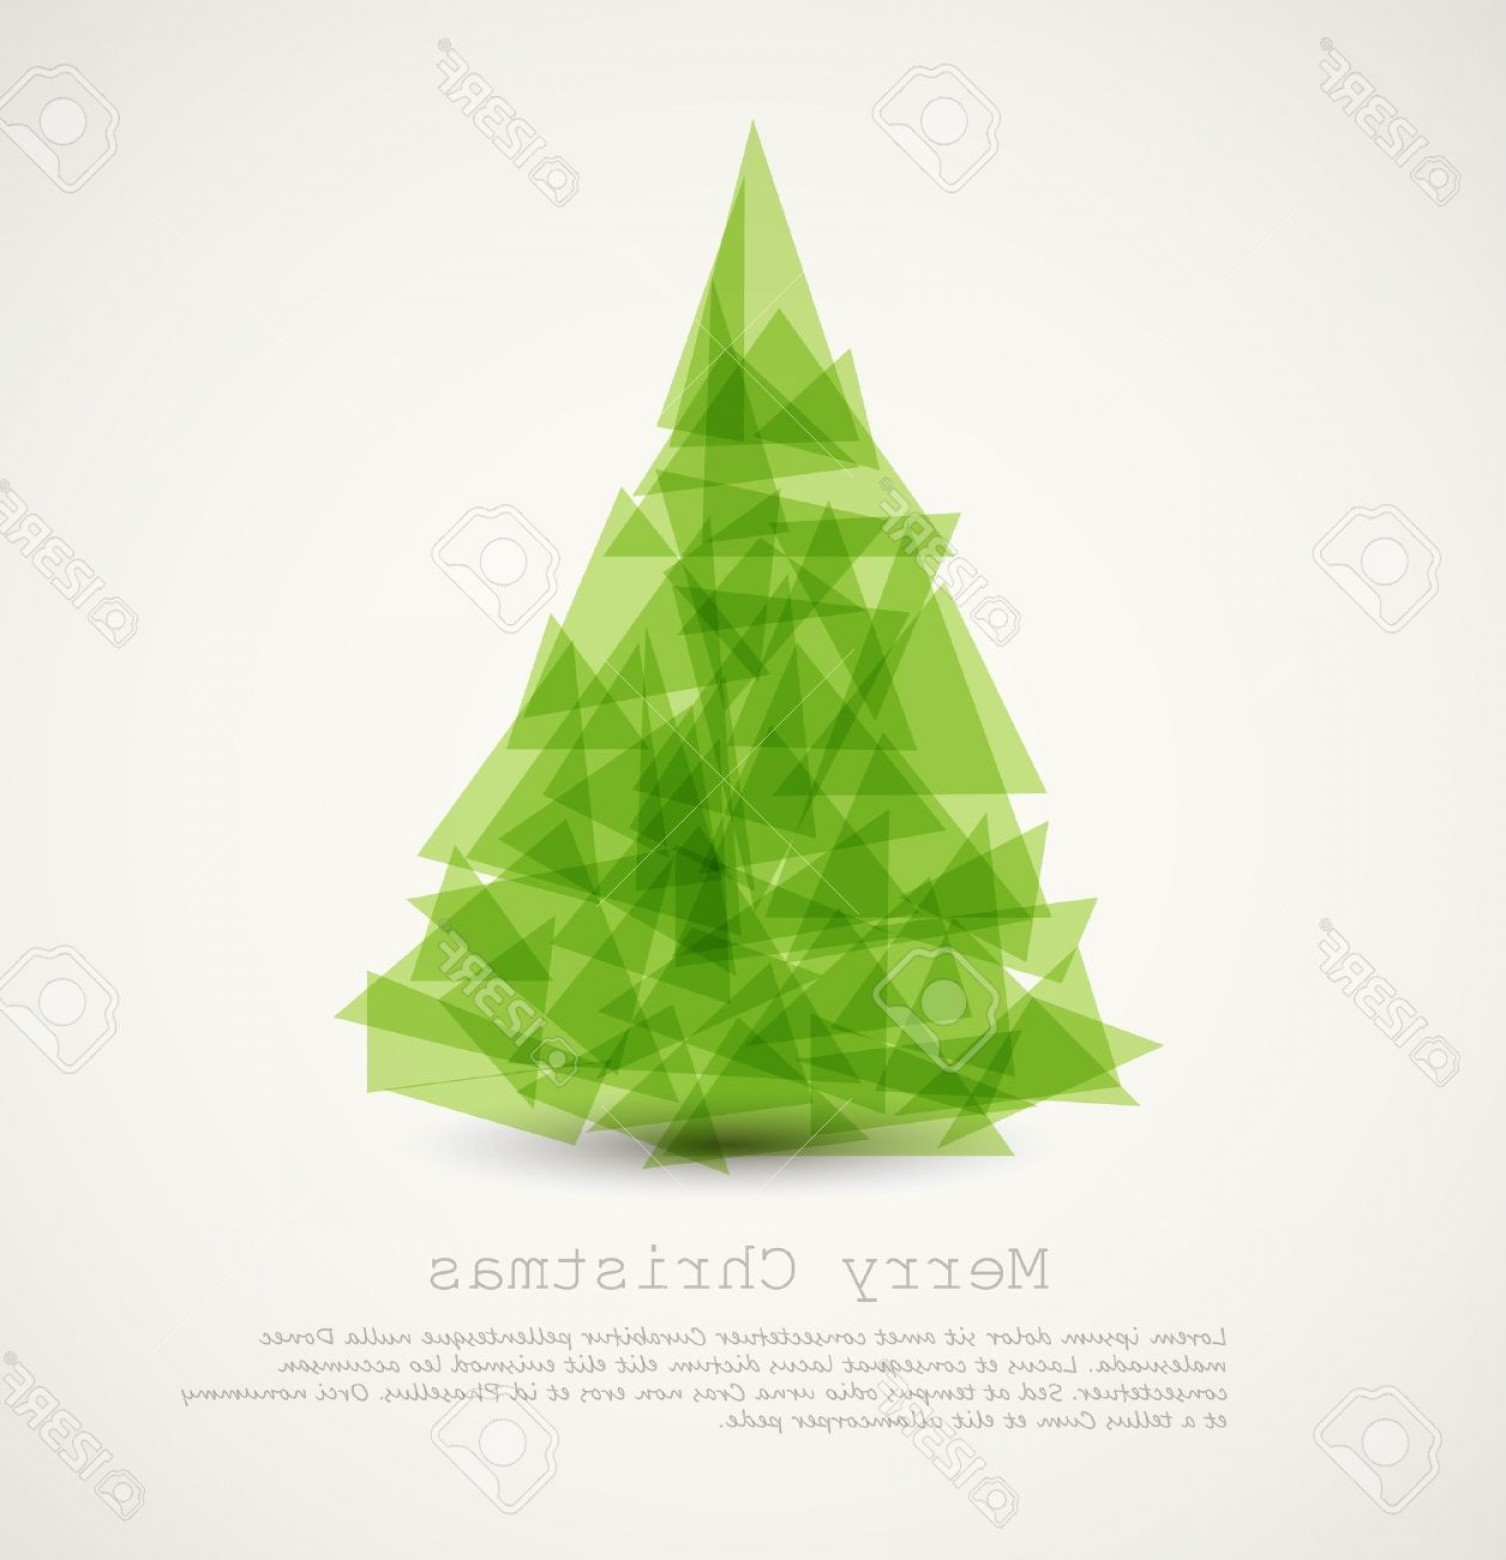 Less Christmas Tree Abstract Vector Background: Photovector Modern Card With Abstract Green Christmas Tree